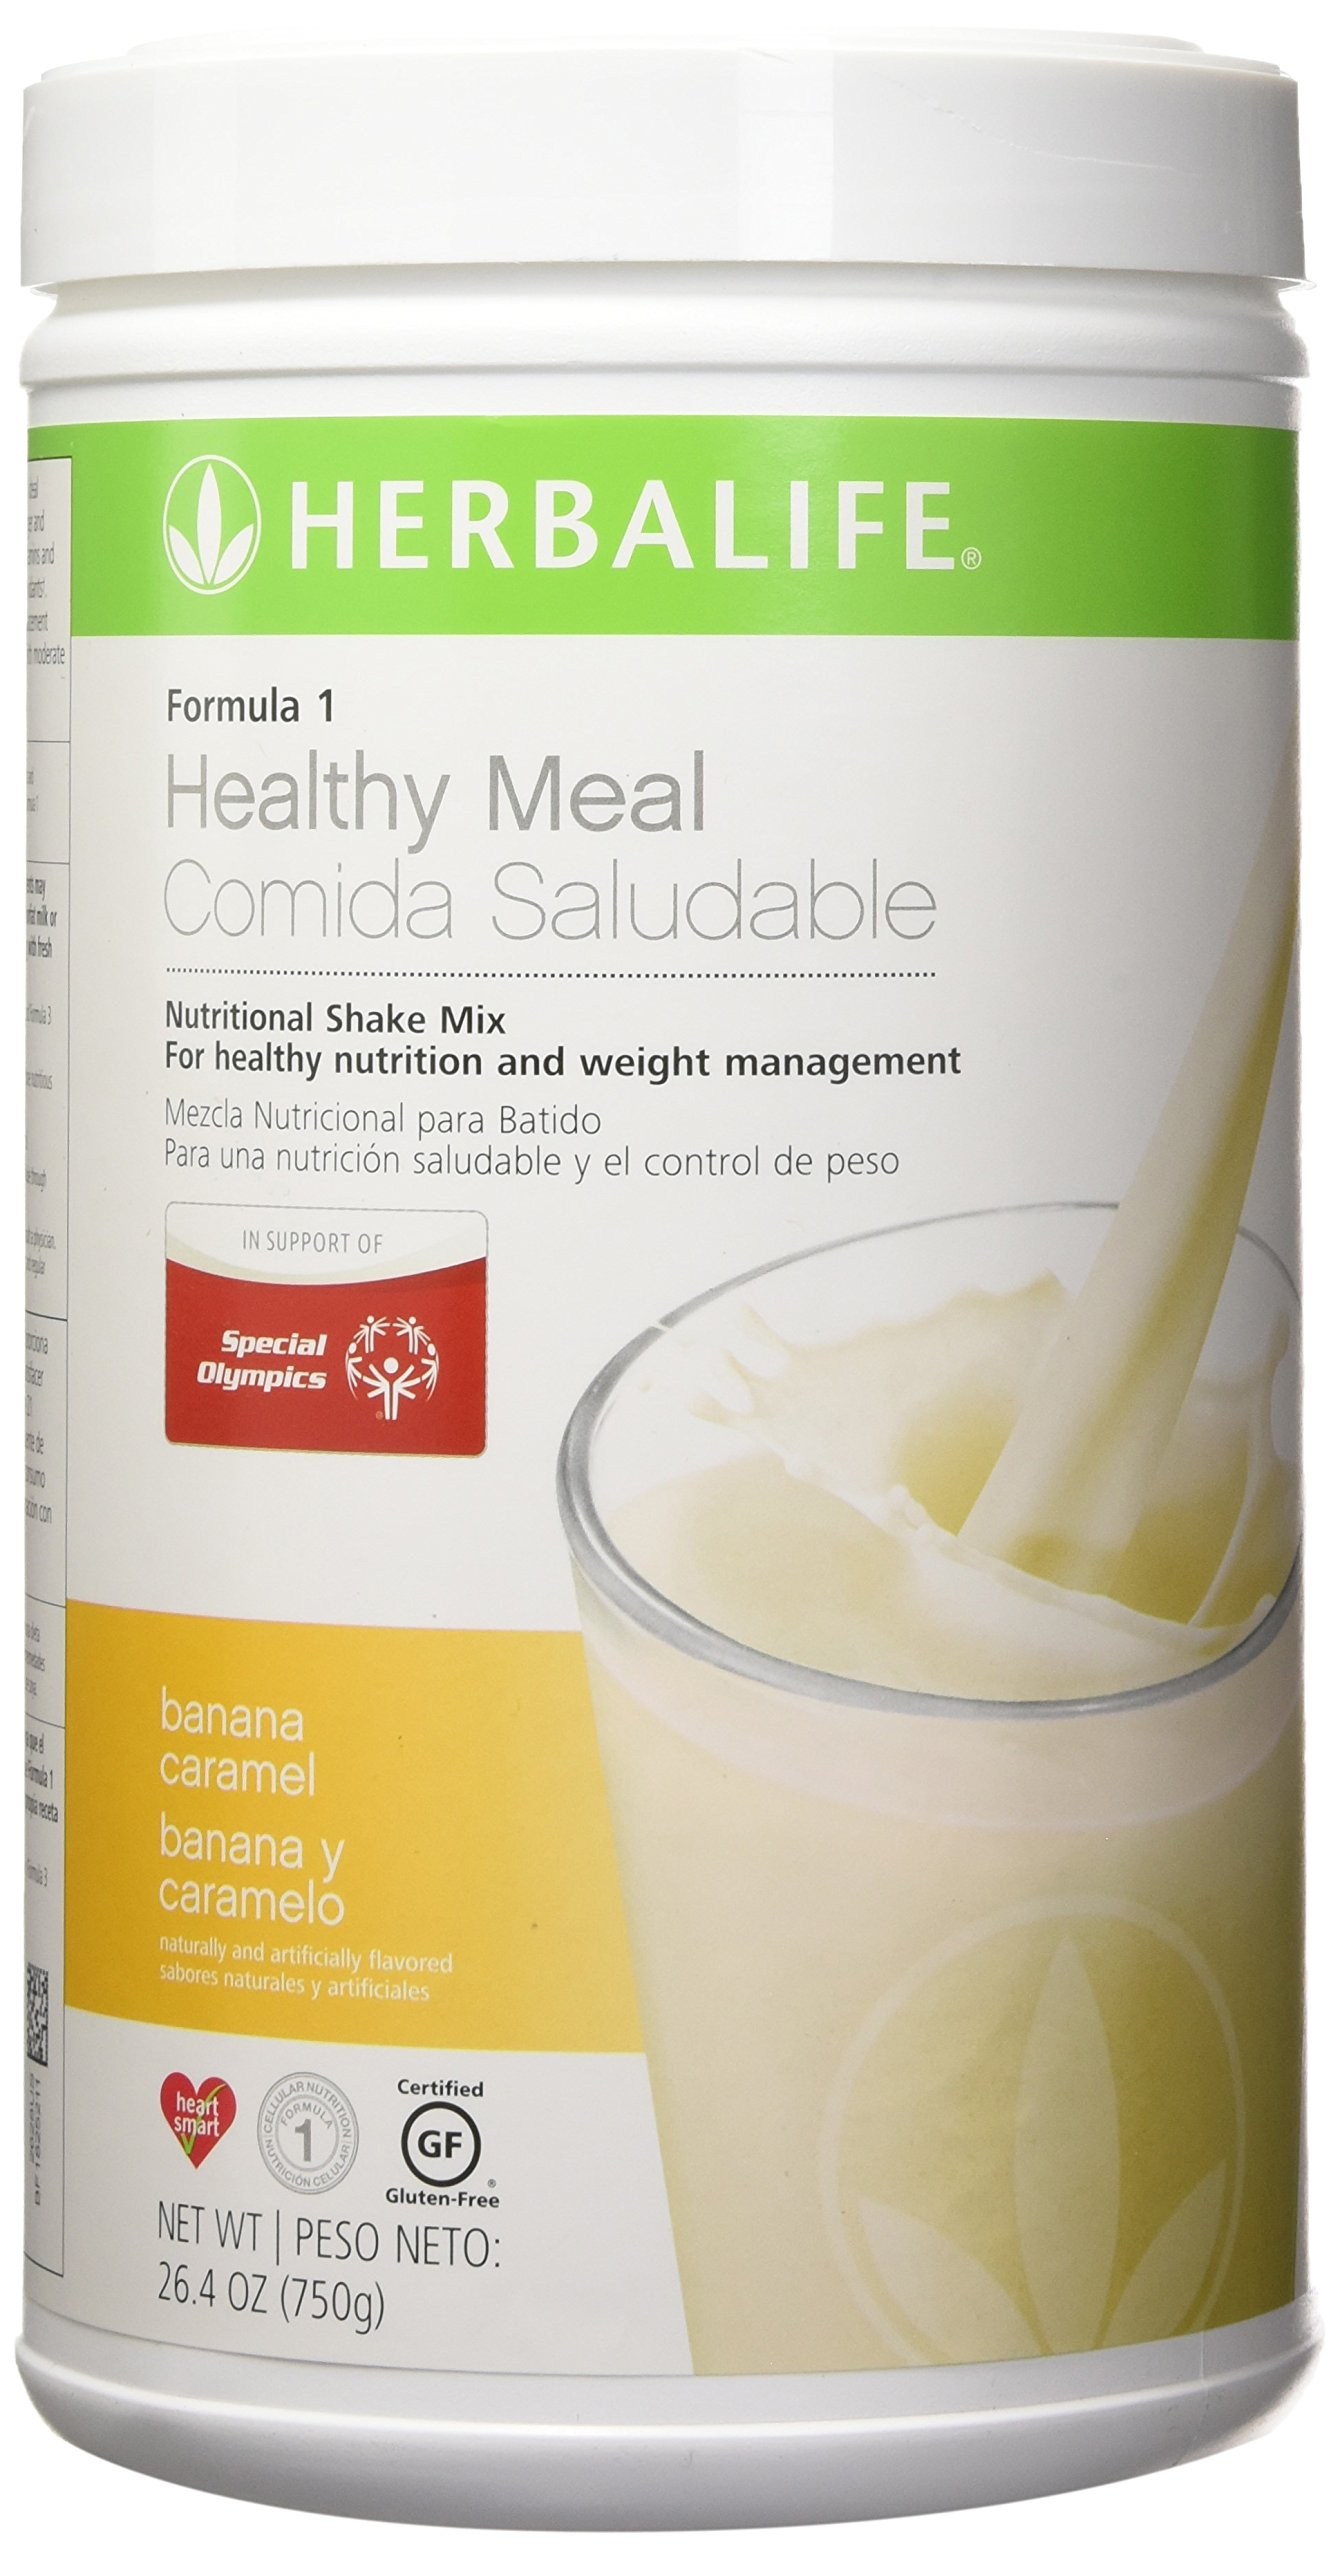 Amazon.com: NEW FLAVOR Healthy Meal Nutritional Shake Mix - Banana Caramel 26.4oz: Health & Personal Care